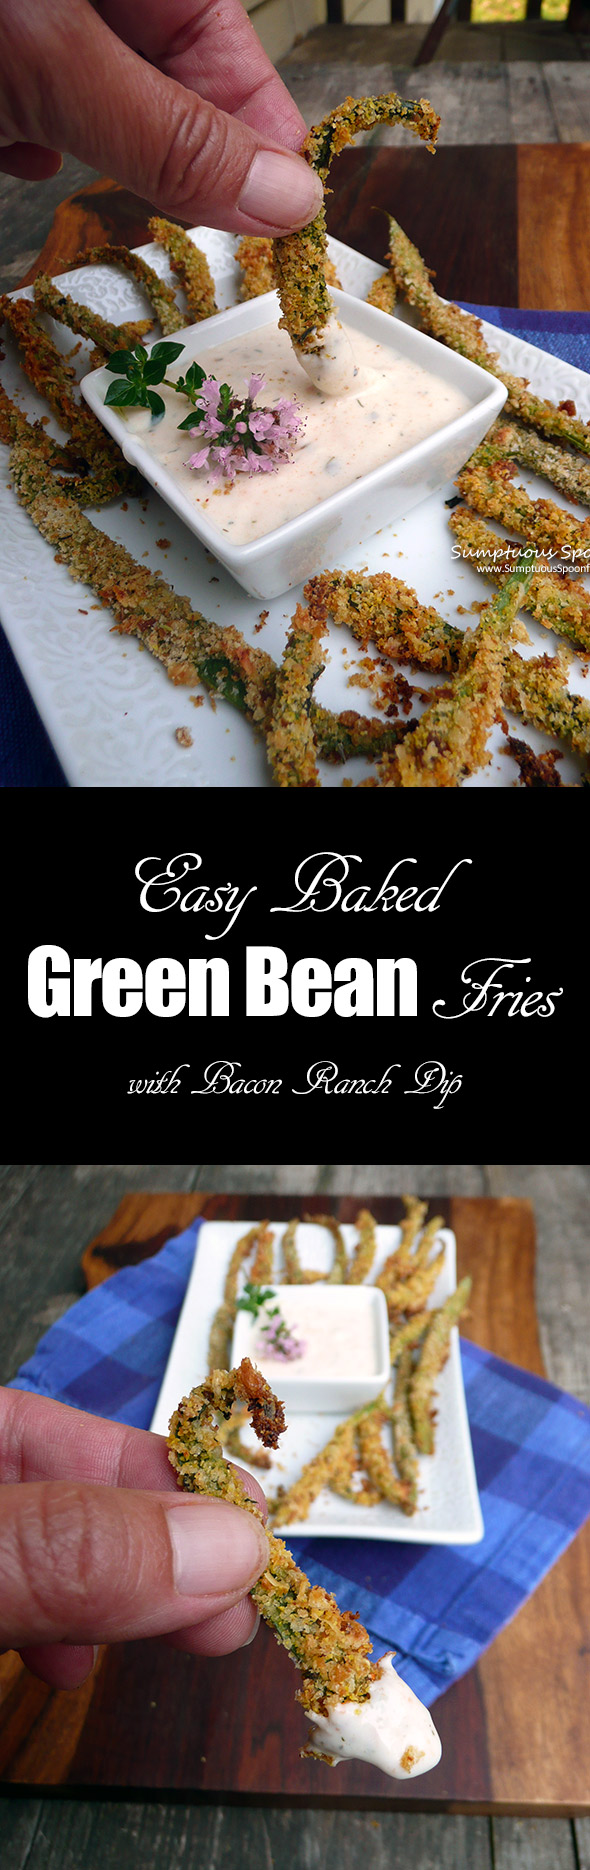 Easy Baked Green Bean Fries ~ Sumptuous Spoonfuls #healthy #baked #appetizer #recipe